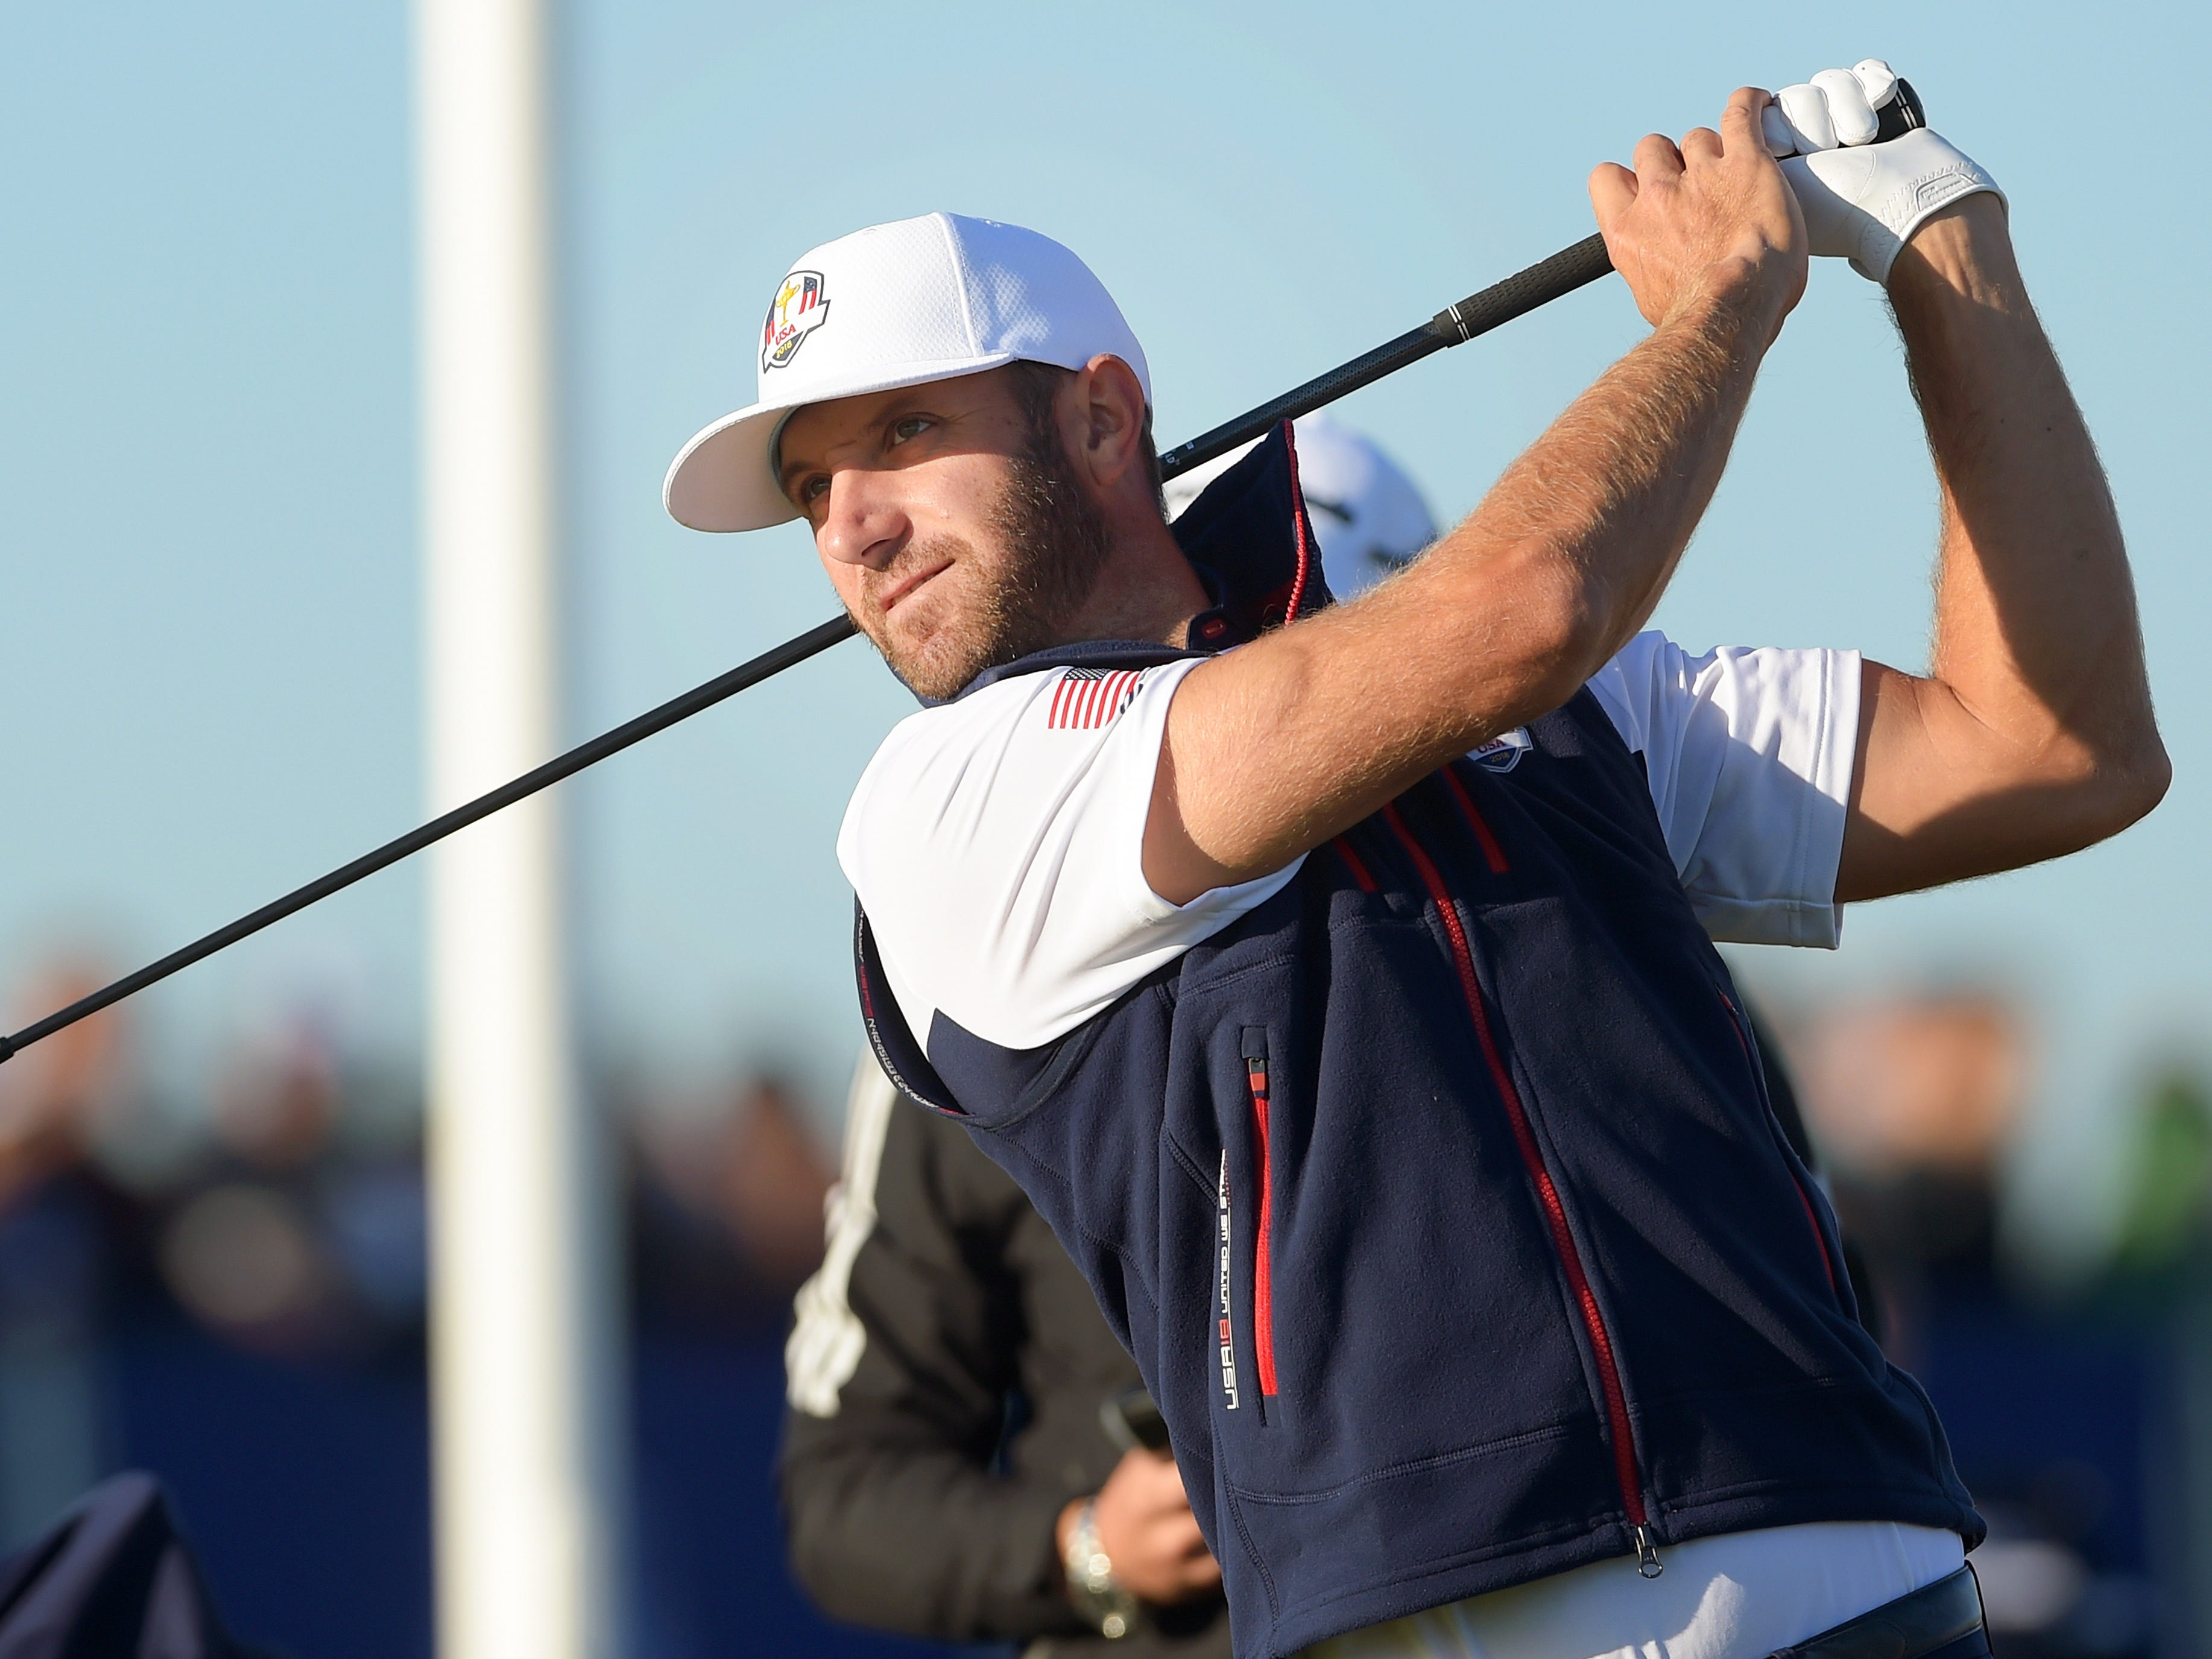 Dustin Johnson of the USA hits a shot during a practice session for the Ryder Cup.